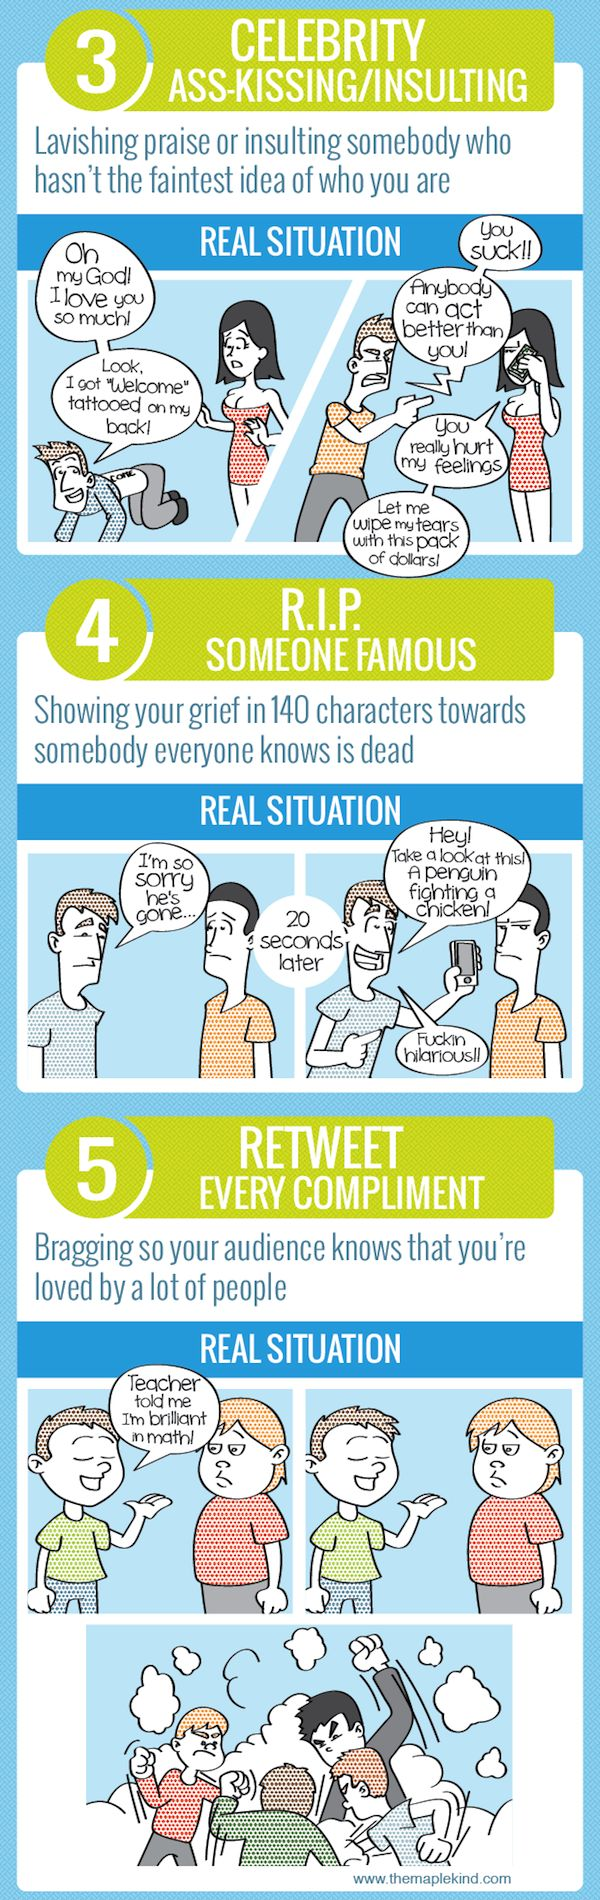 10 Mistakes that you might be making on Twitter: 3) Celebrity Ass-Kissing, 4) R.I.P. Someone Famous, and 5) Retweet Every Compliment